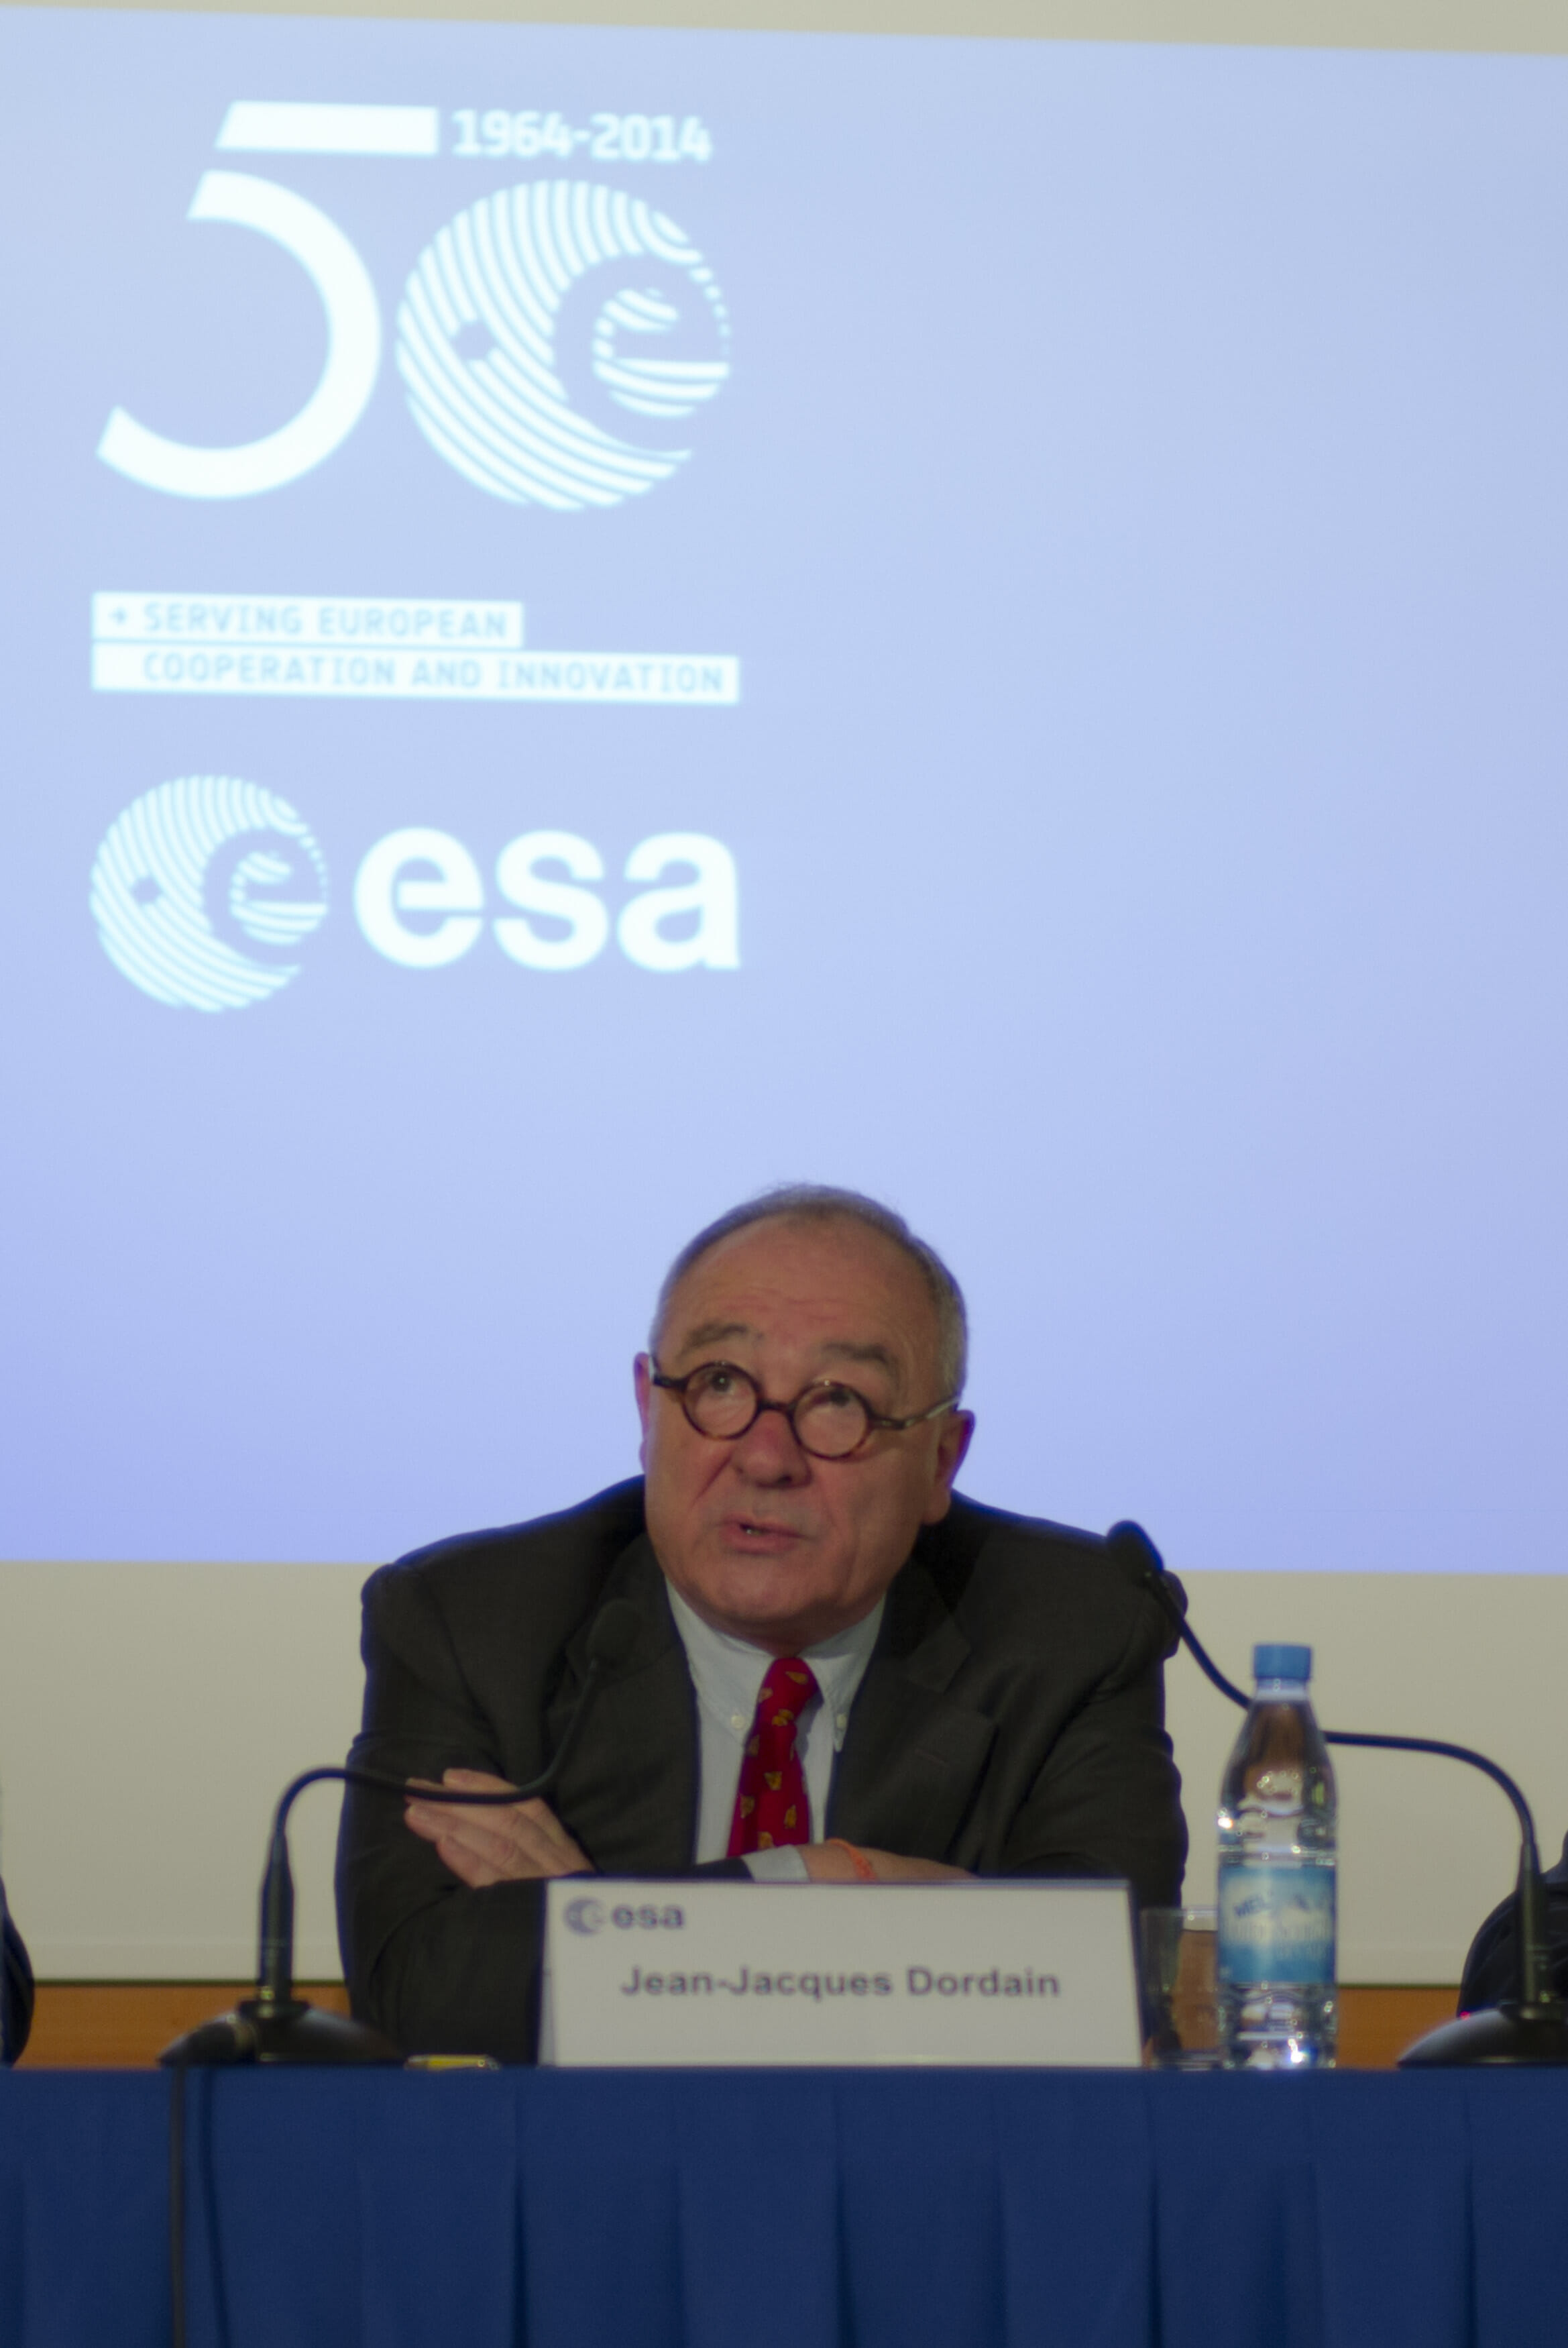 ESA's Dordain Unapologetic about Galileo at Wide-Ranging Press Conference